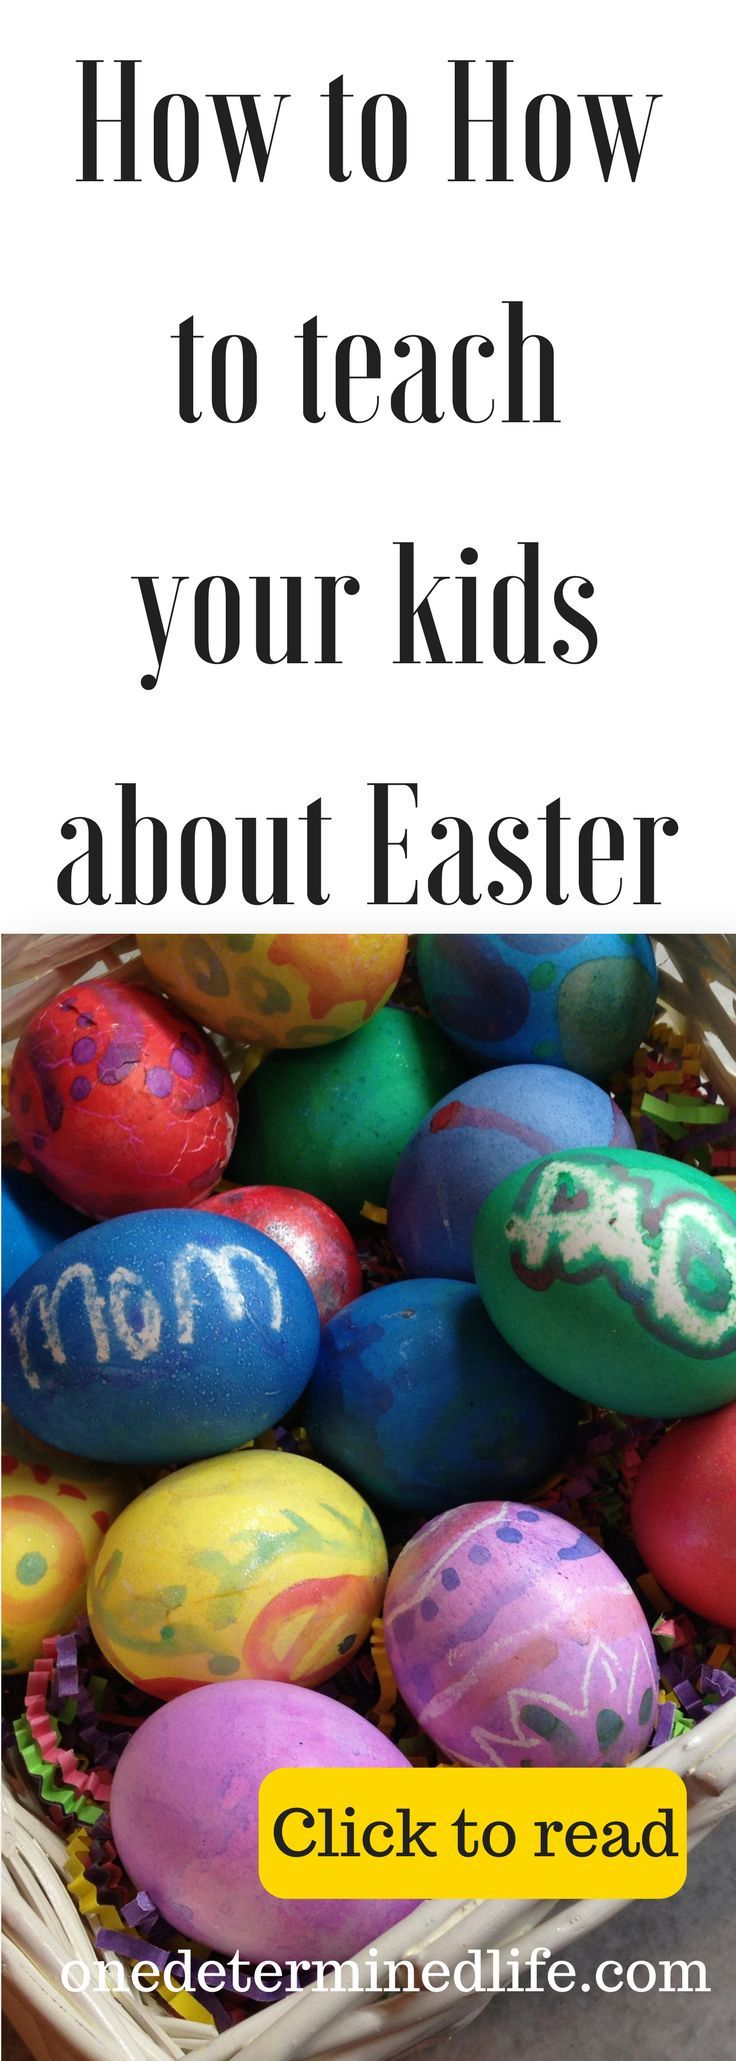 Easter is right around the corner. My goal as a parent is to have Easter be more than just bunnies and chocolate. To do that, I have chosen a few ways to teach them the real meaning of Easter. Click to read about it #easter, #easterideas, #easterchristian